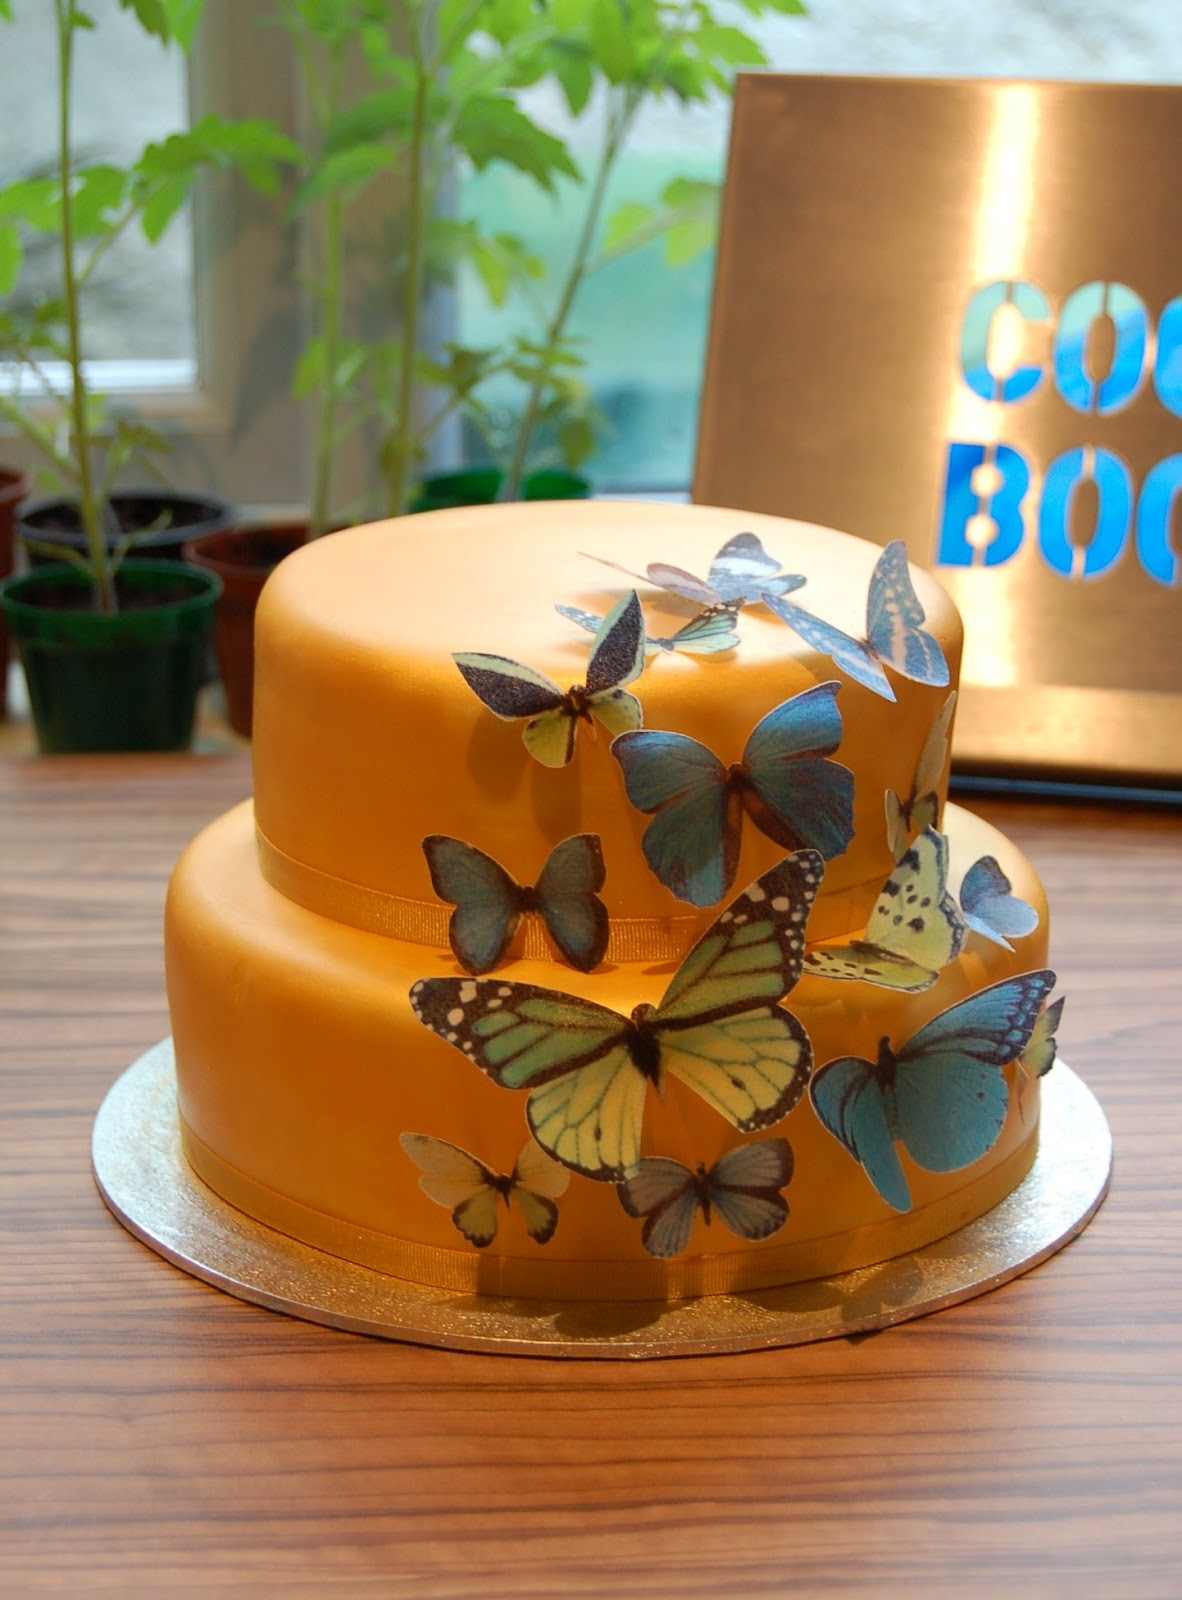 This Was A Fairly Straightforward Cake To Make As All The Impact Comes From Butterflies Themselves I Started With An 8 And 6 Round Cakes Which Were